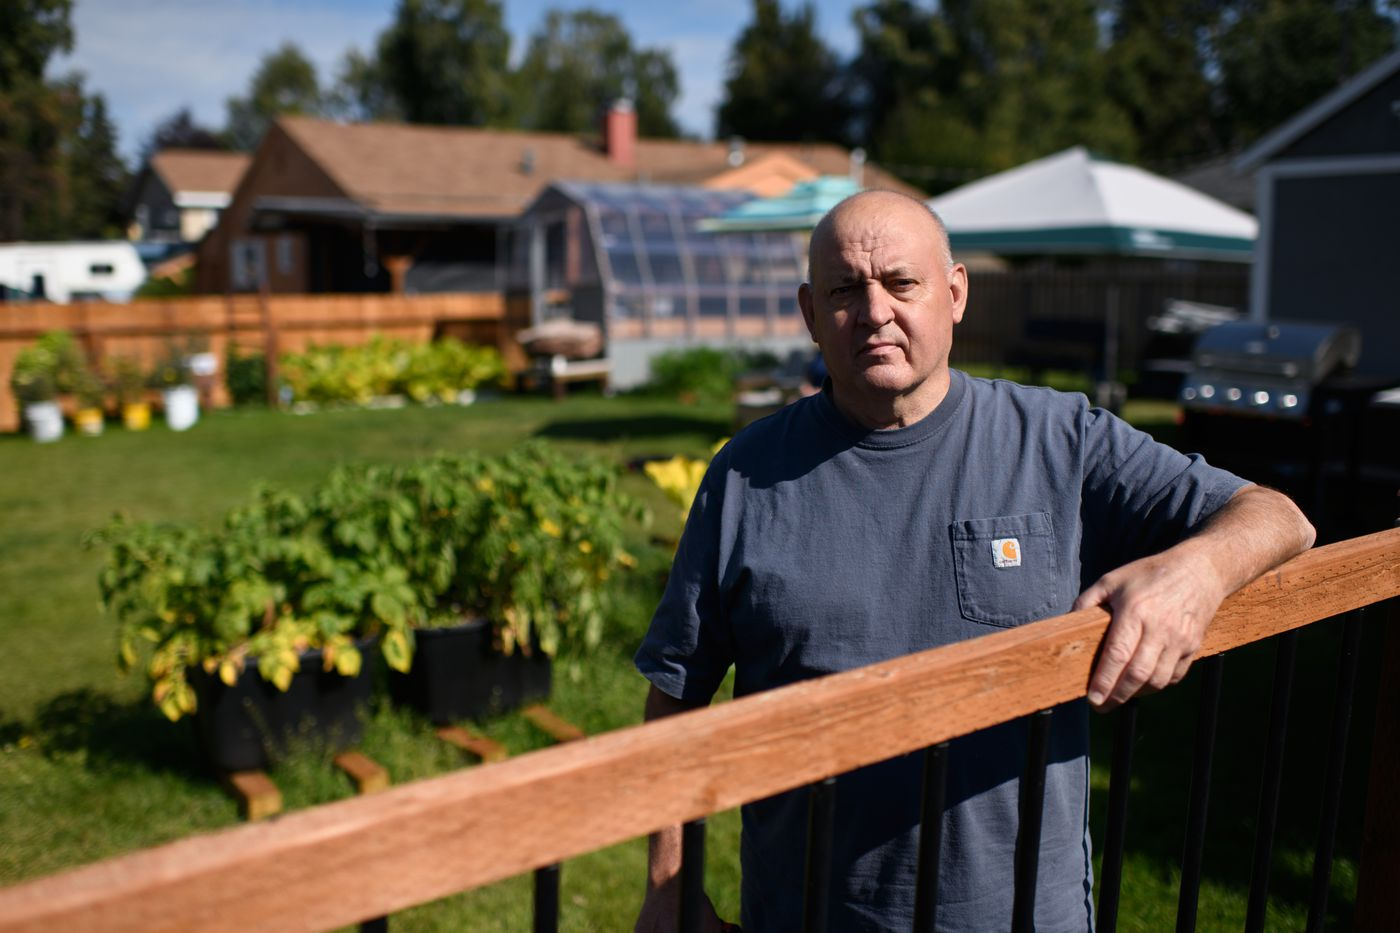 Anchorage resident Frank Philip spent 18 days hospitalized with COVID-19 in July. (Marc Lester / ADN)